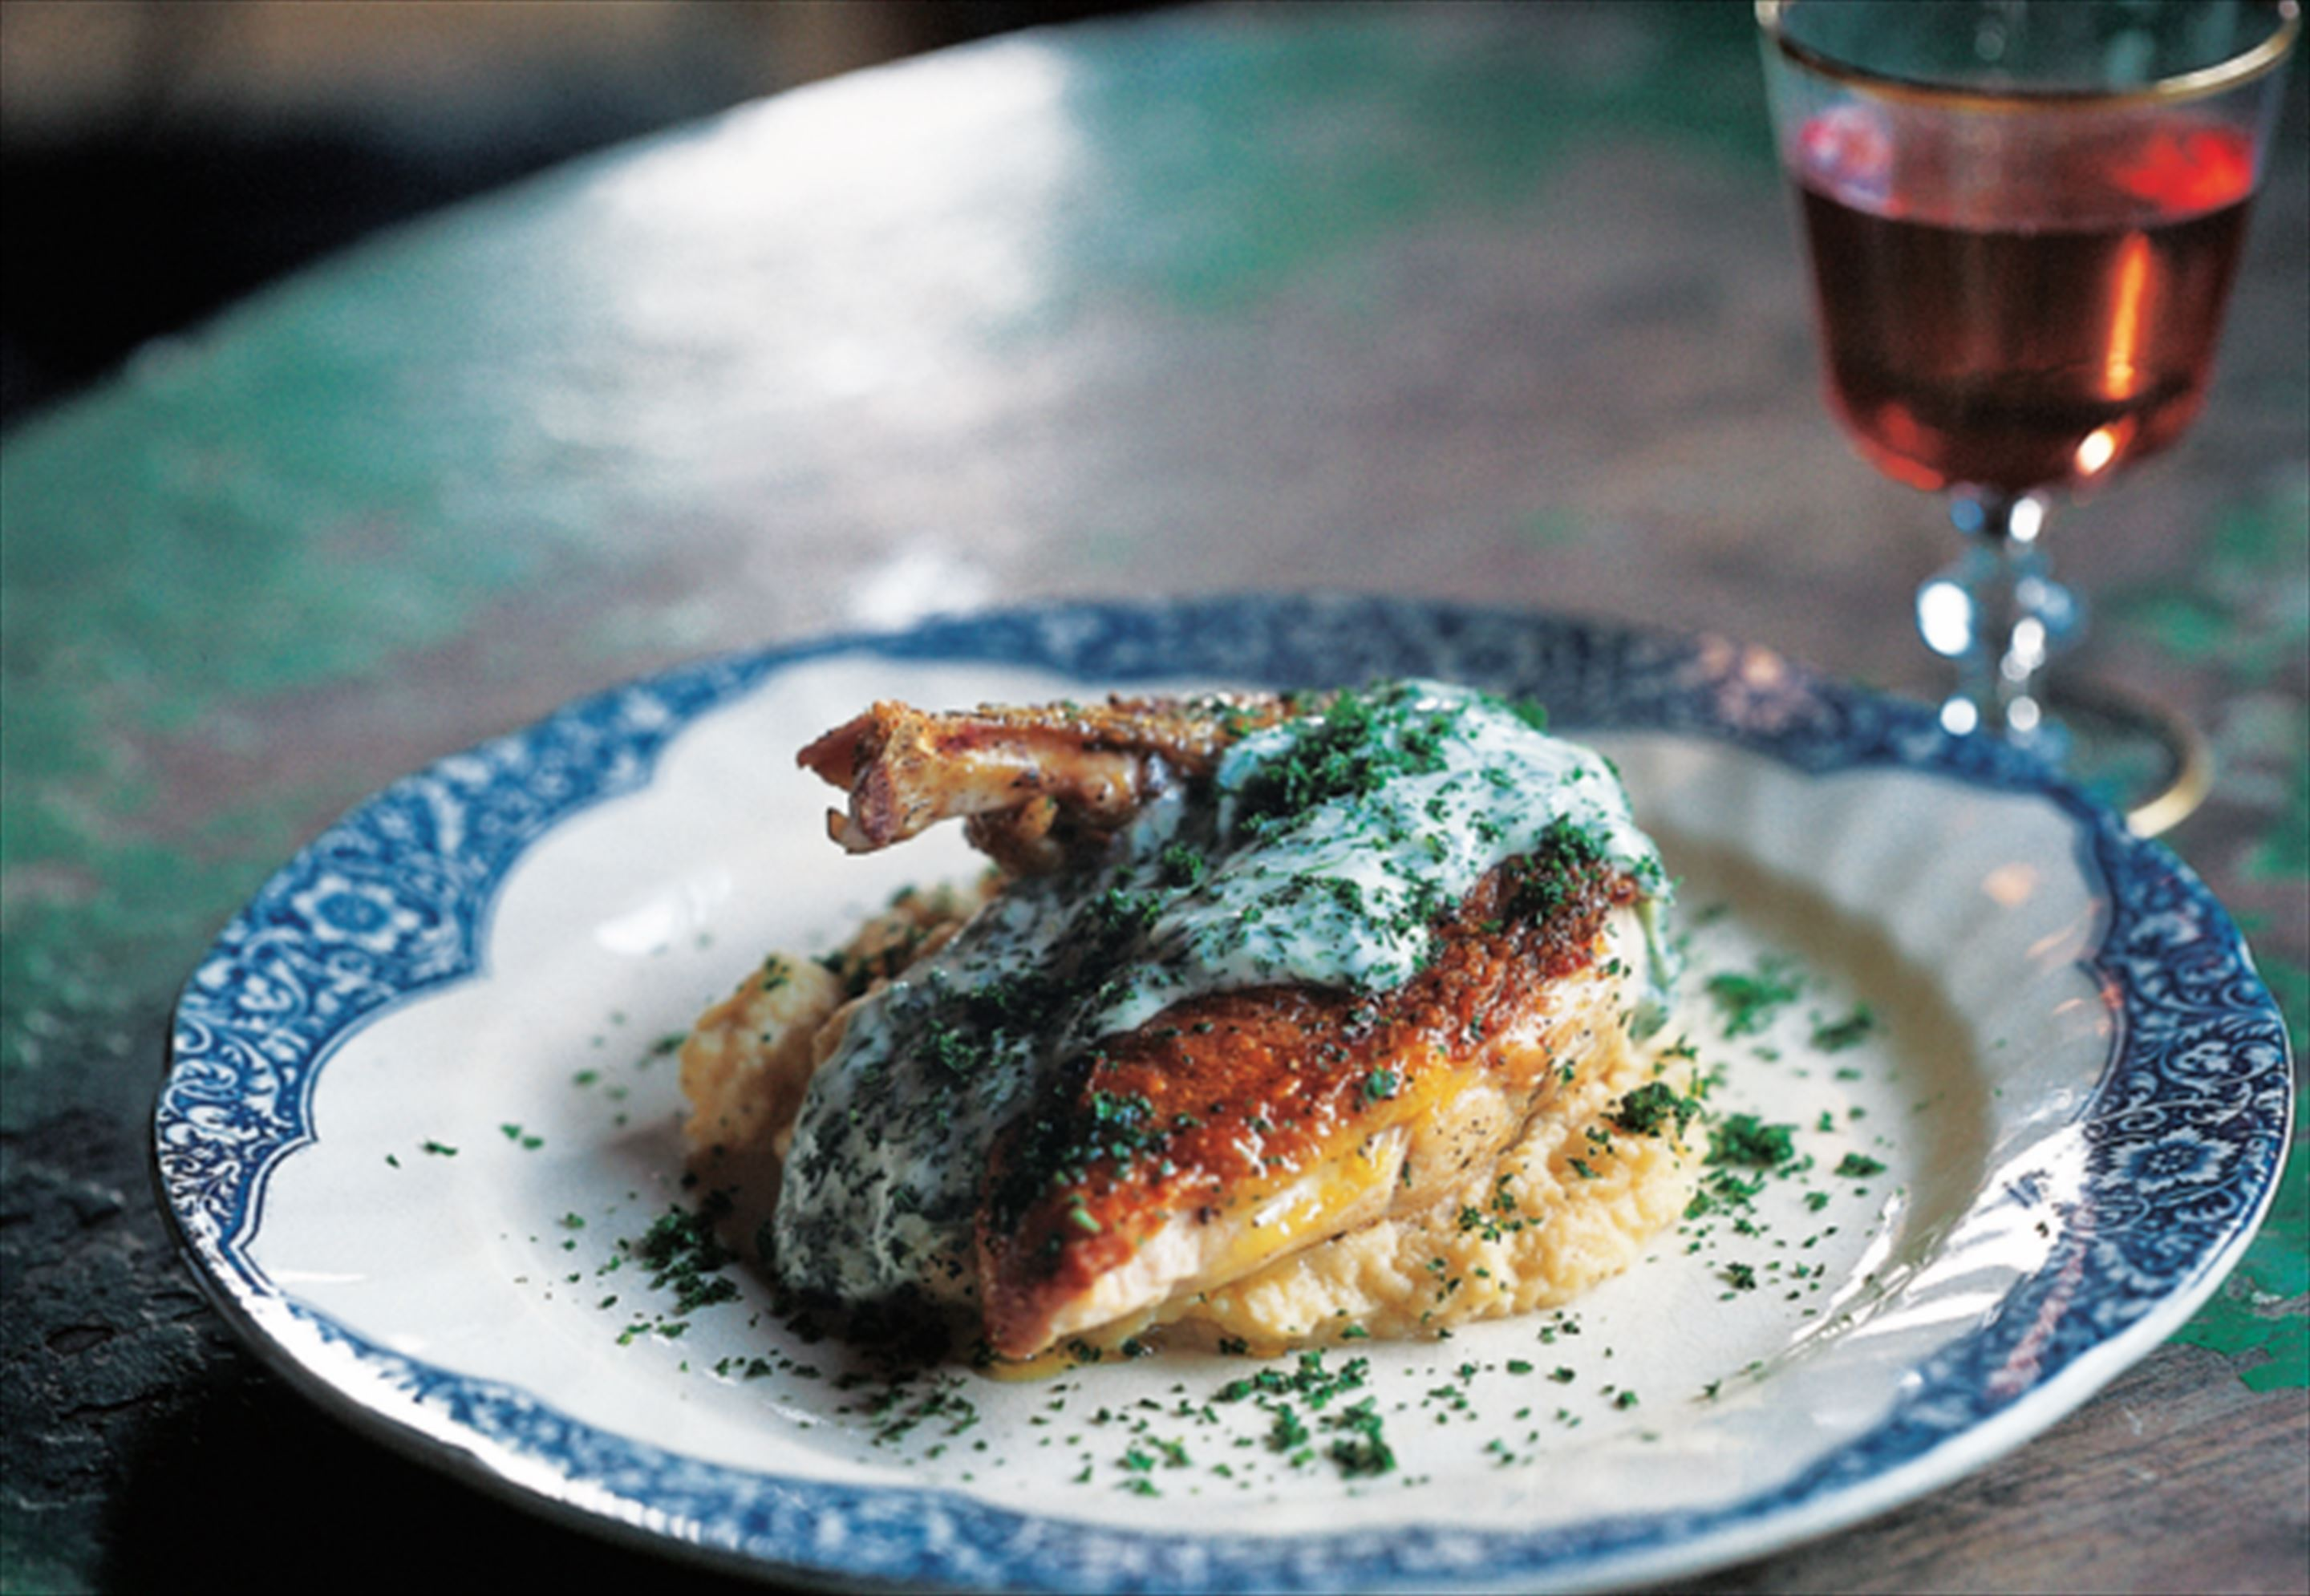 Pan-roasted guinea fowl with parsley sauce